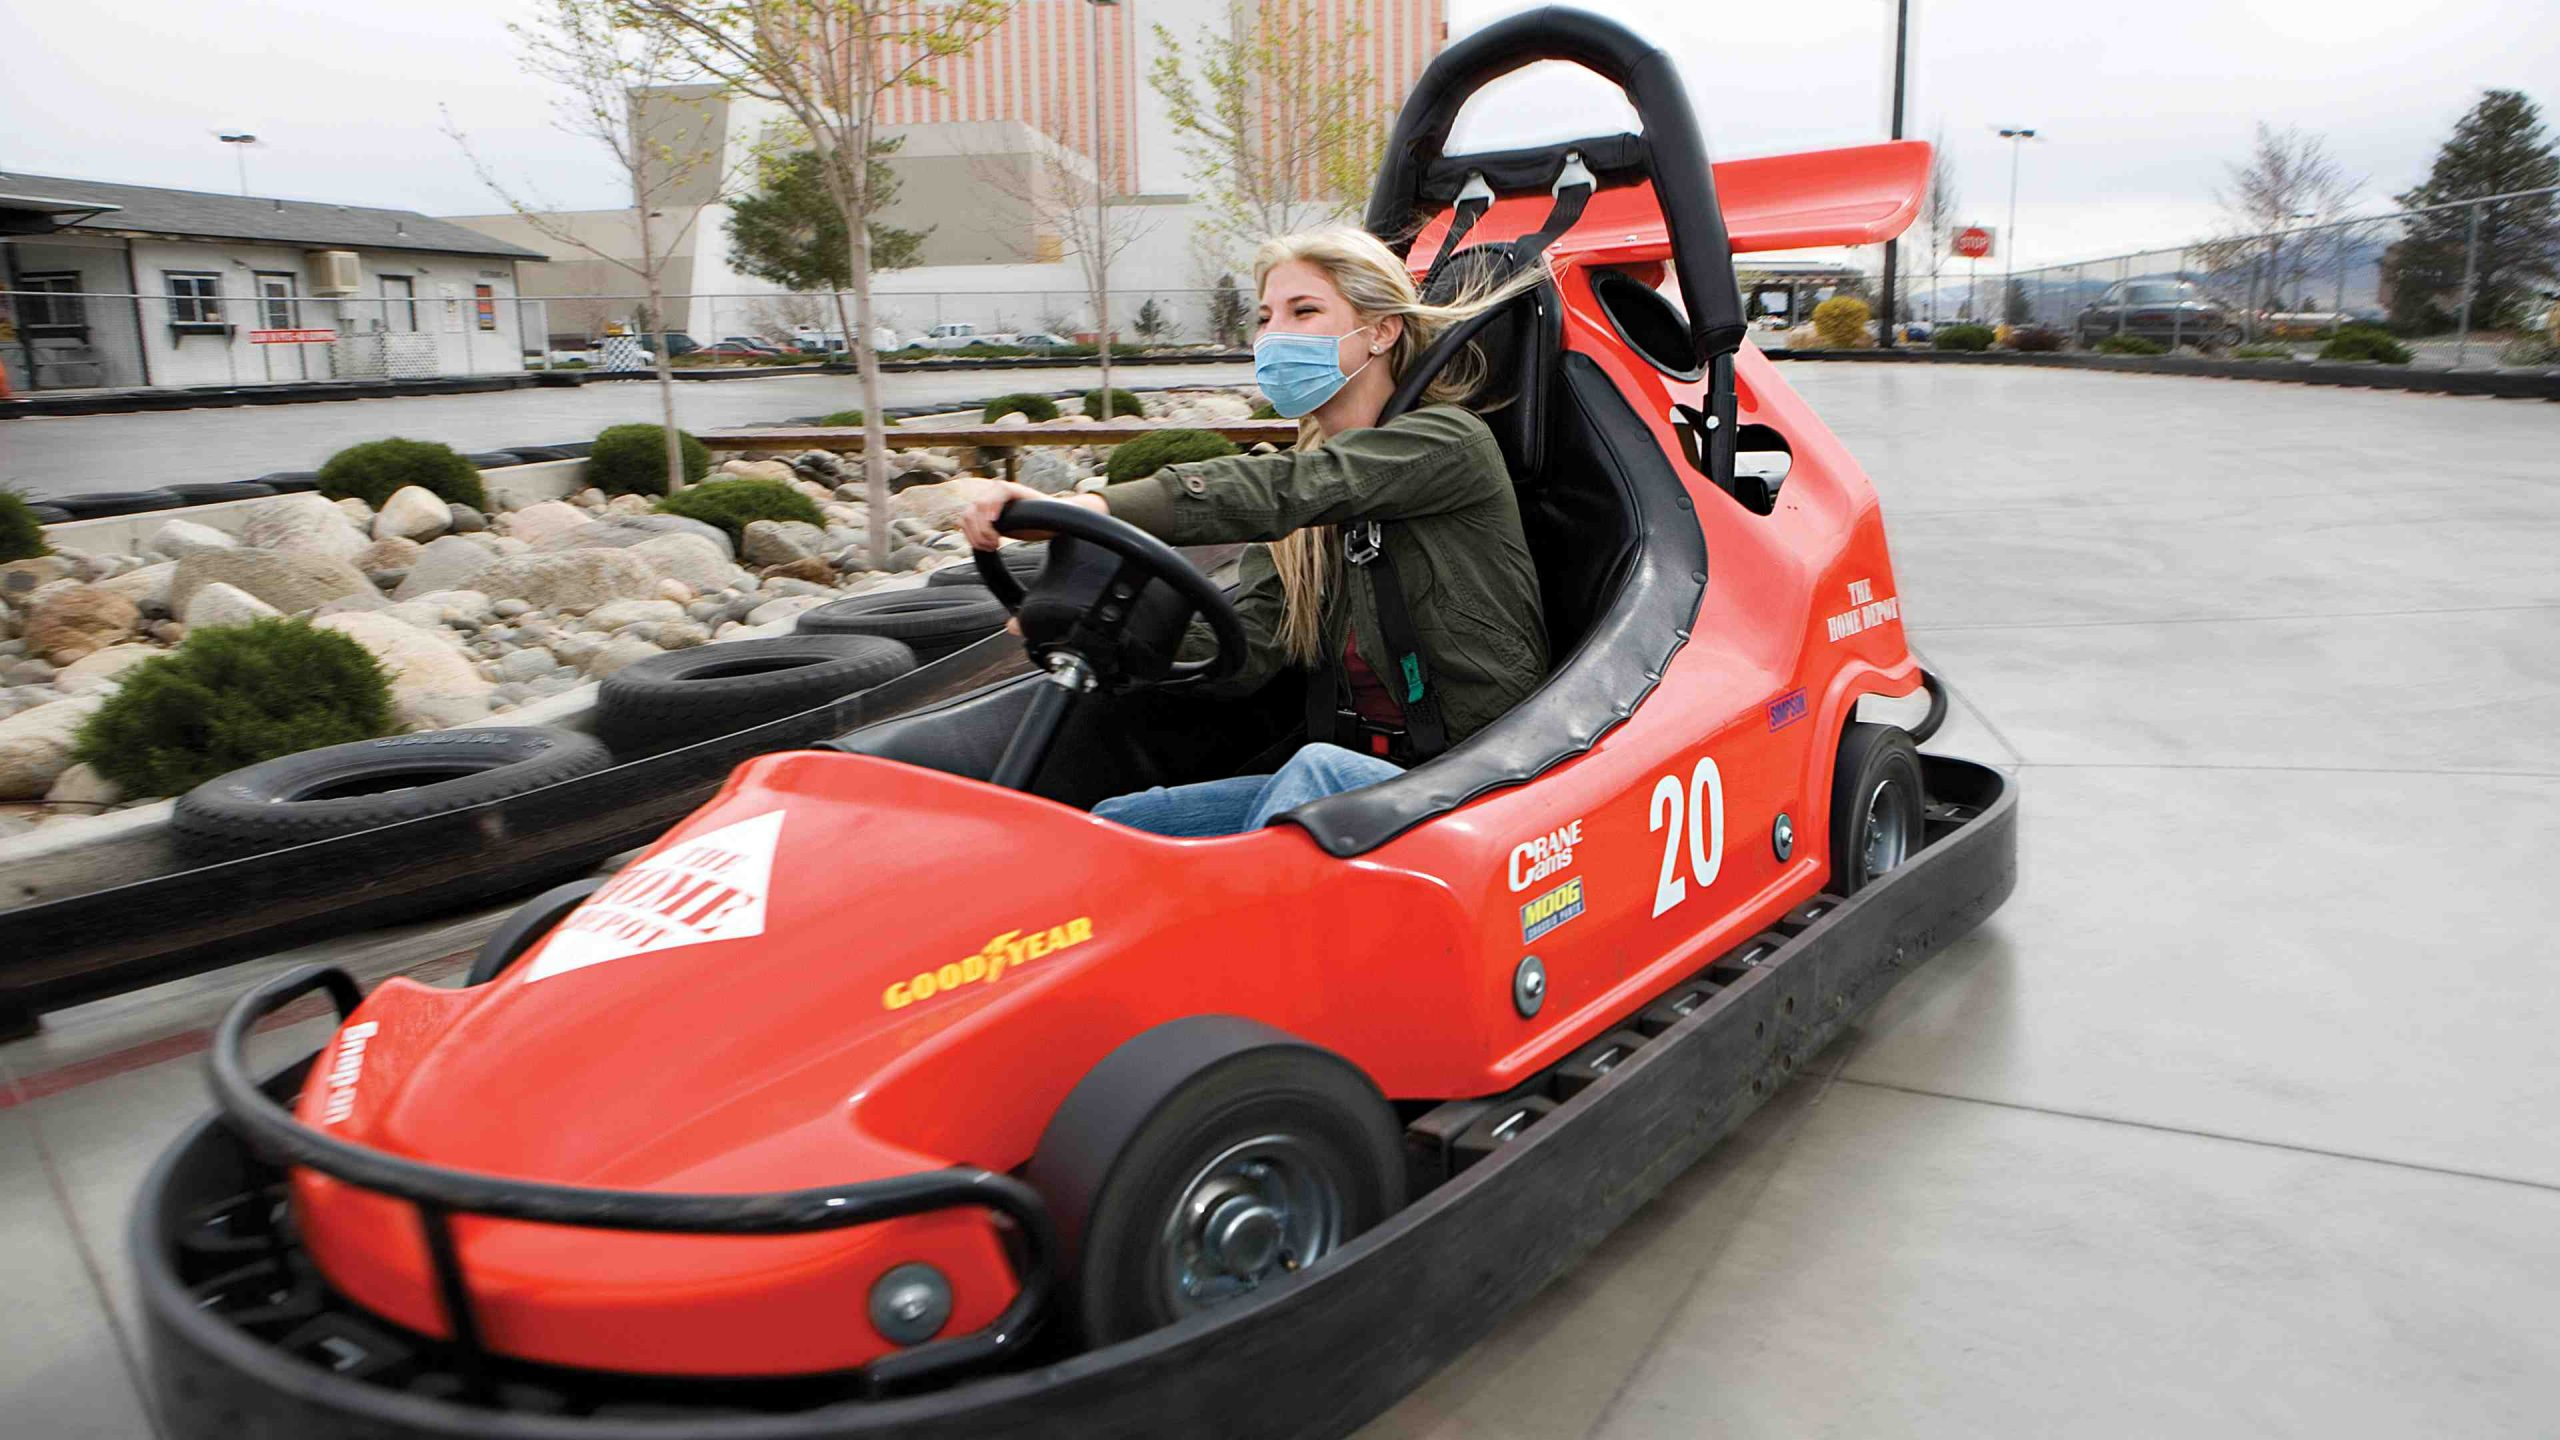 Lady in a mask taking a turn in a red go-kart